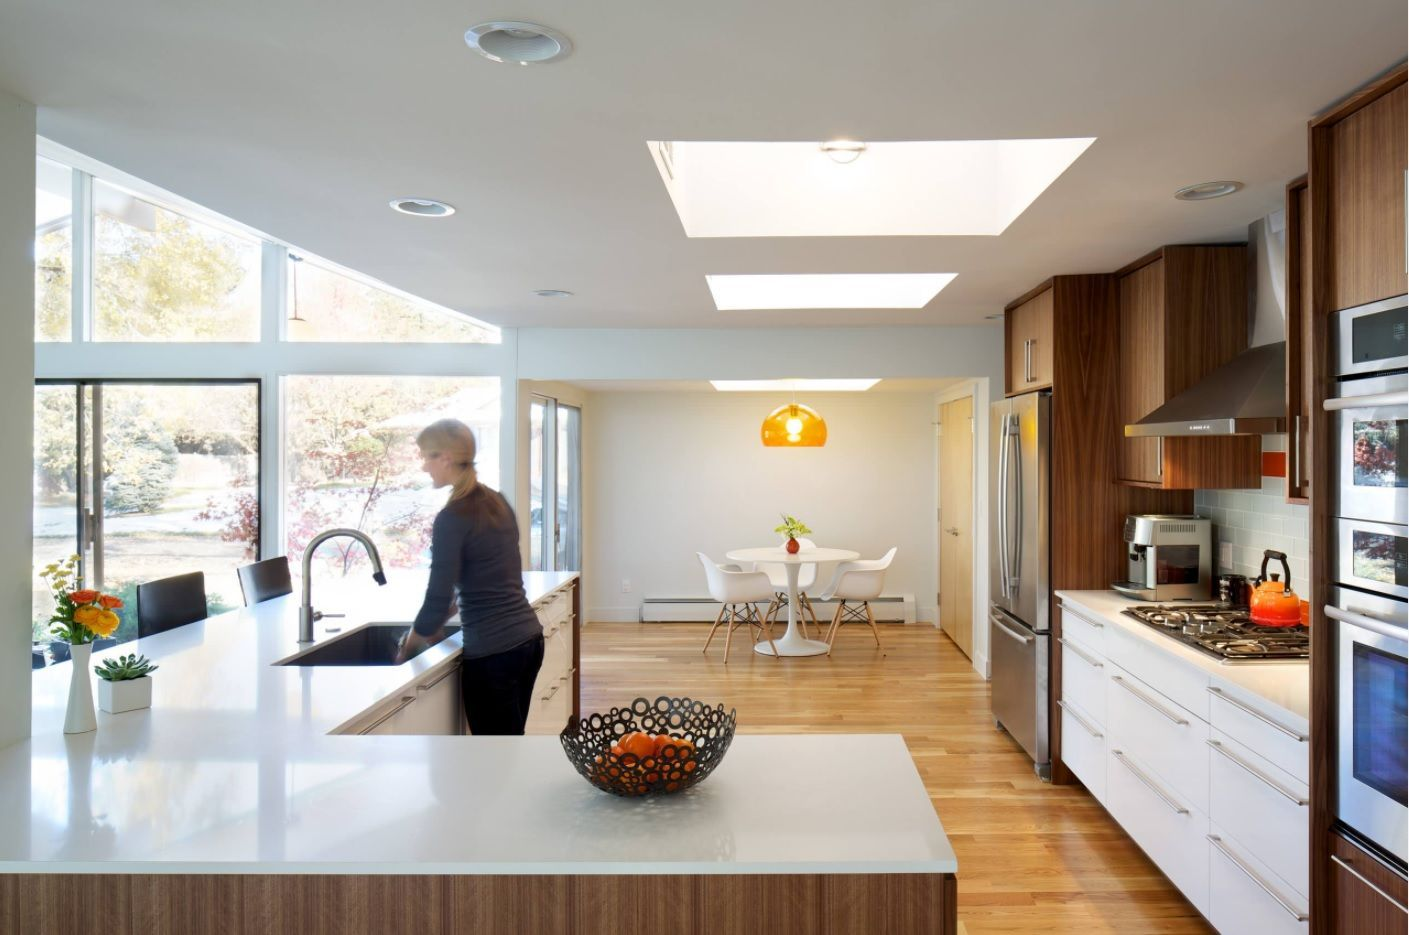 Open Kitchen Design & Interior Decoration. A hostess in the combined space with island zoning and top artificial skylight